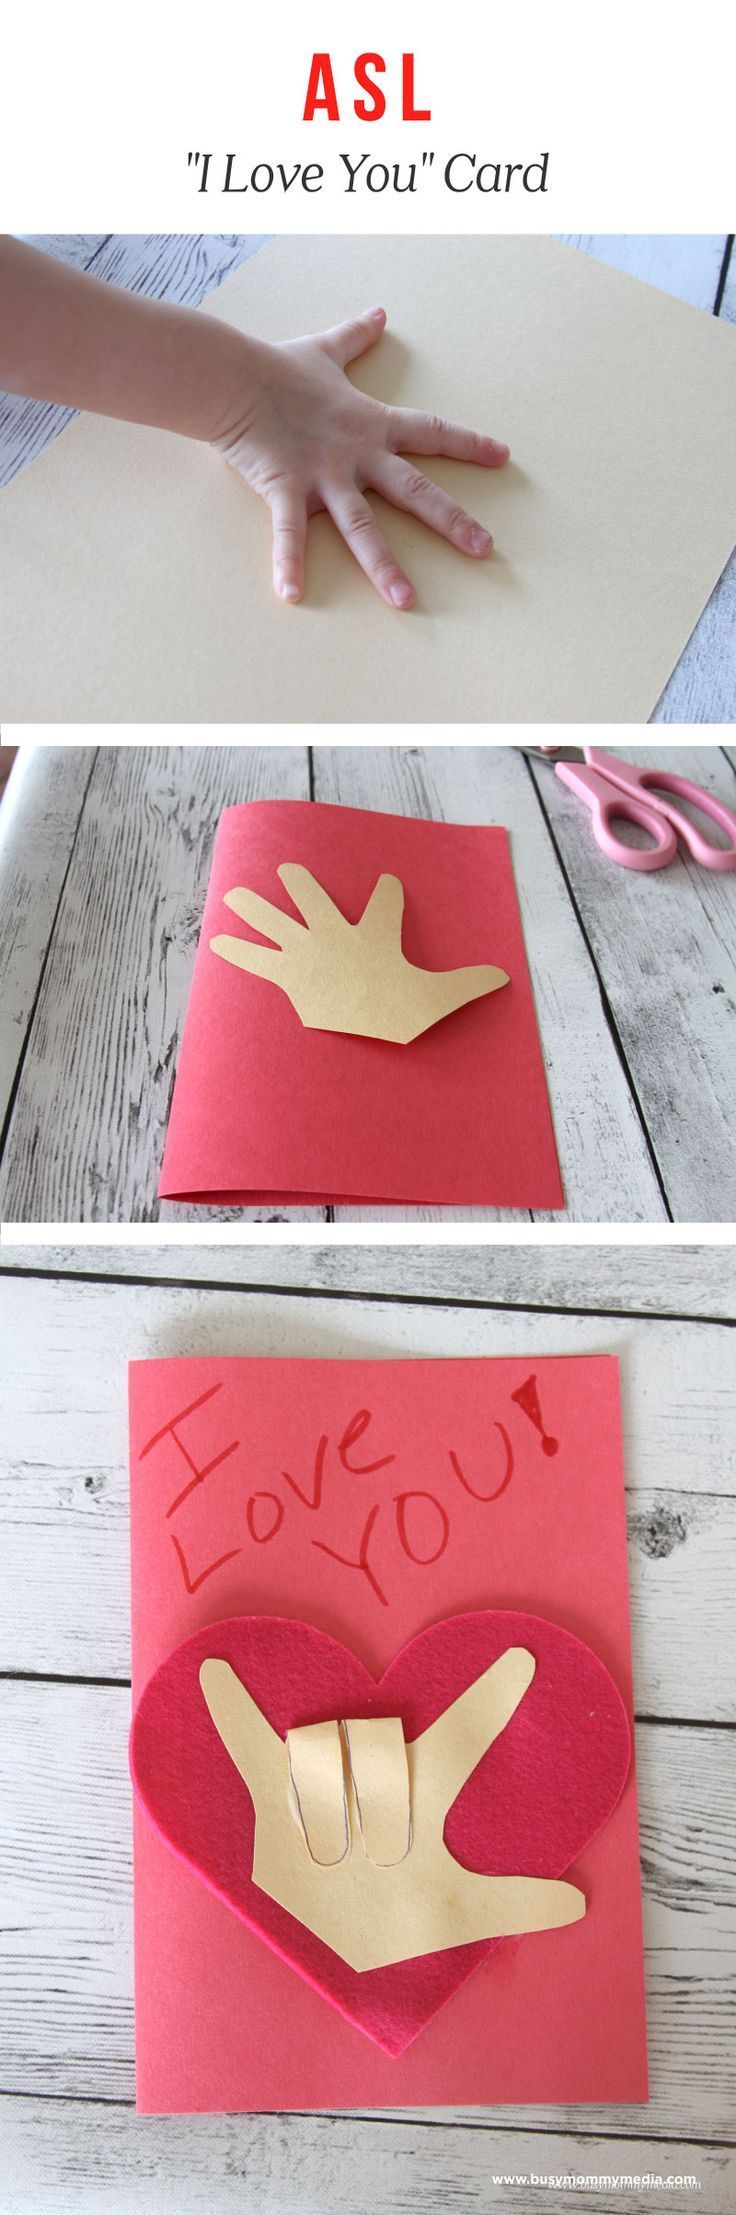 ASL I Love You Craft Try this Fun